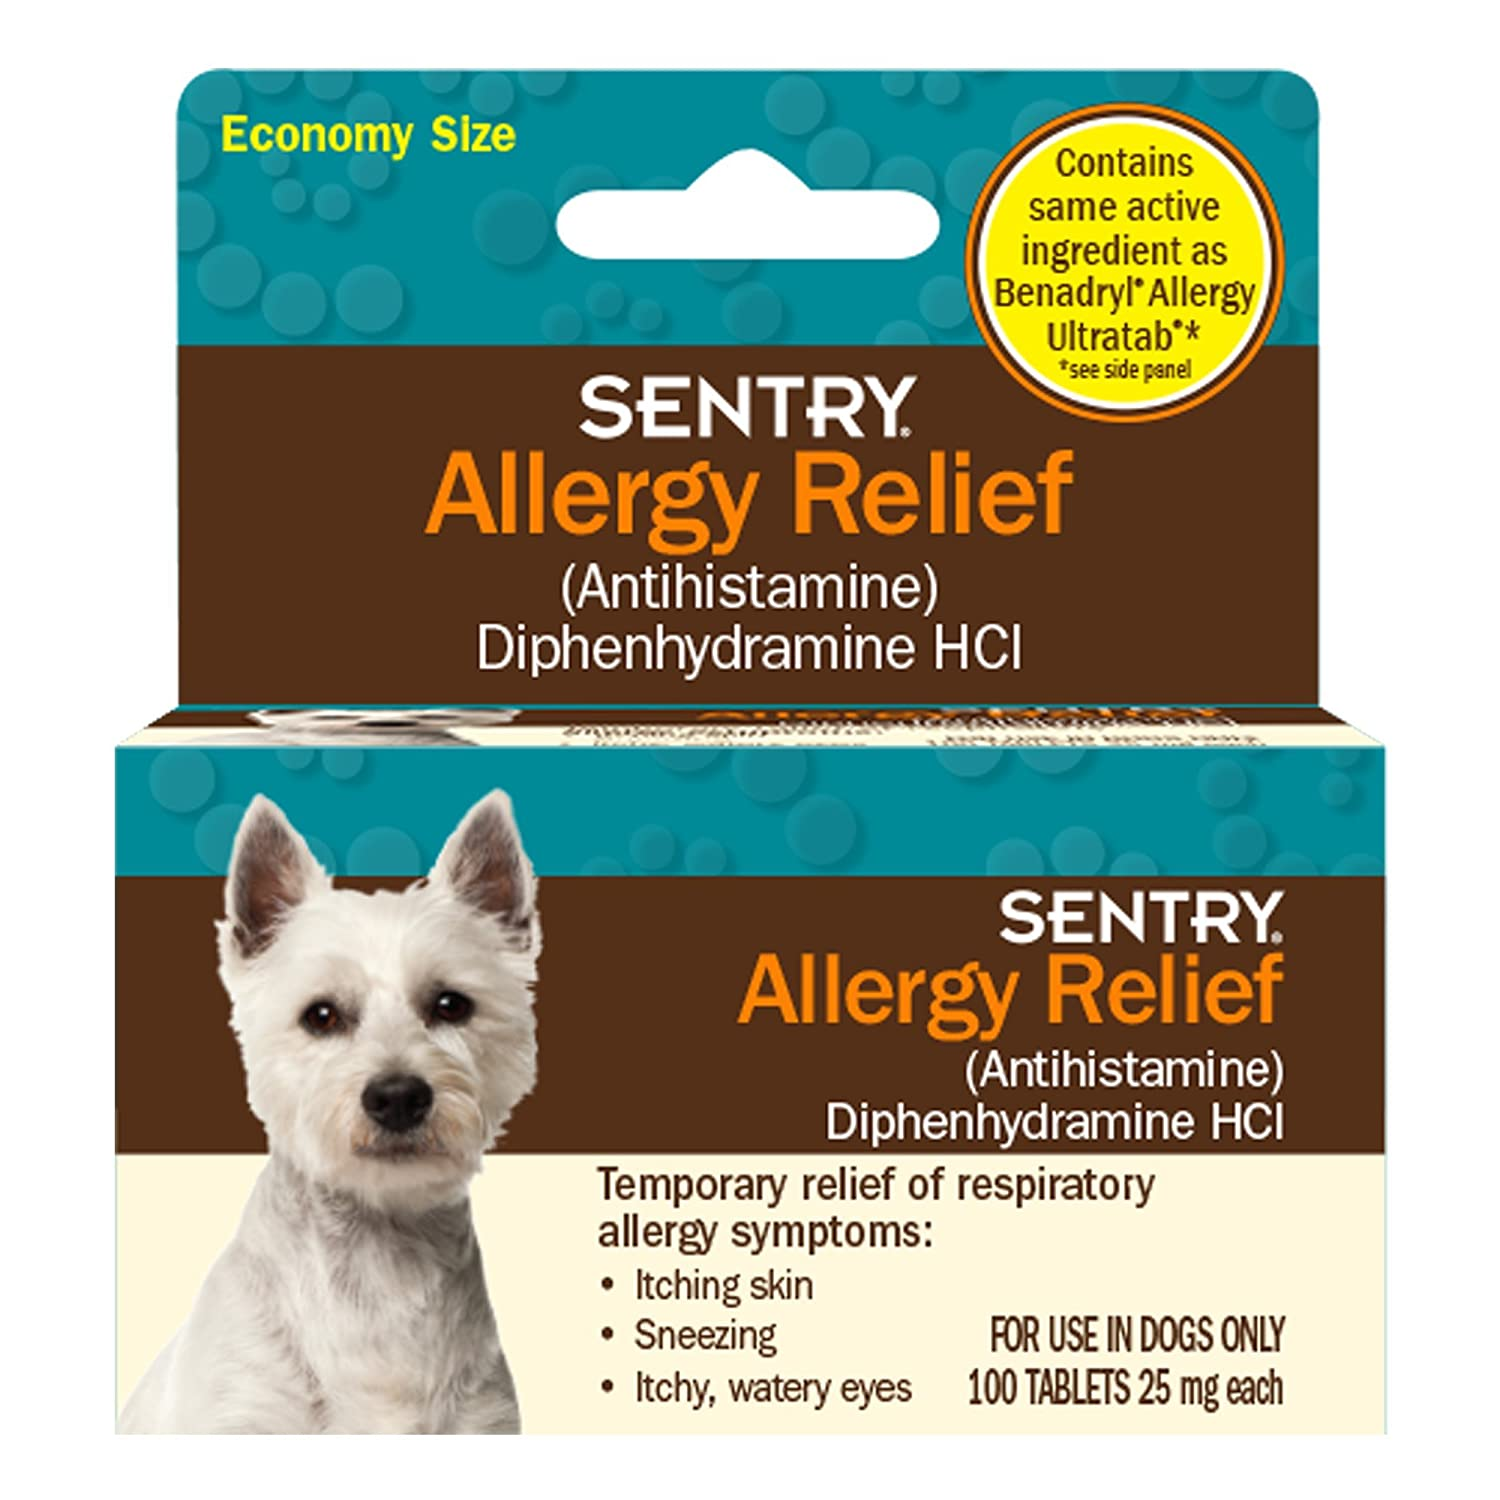 Sentry Allergy Relief For Dogs 100 Tablets 25mg each